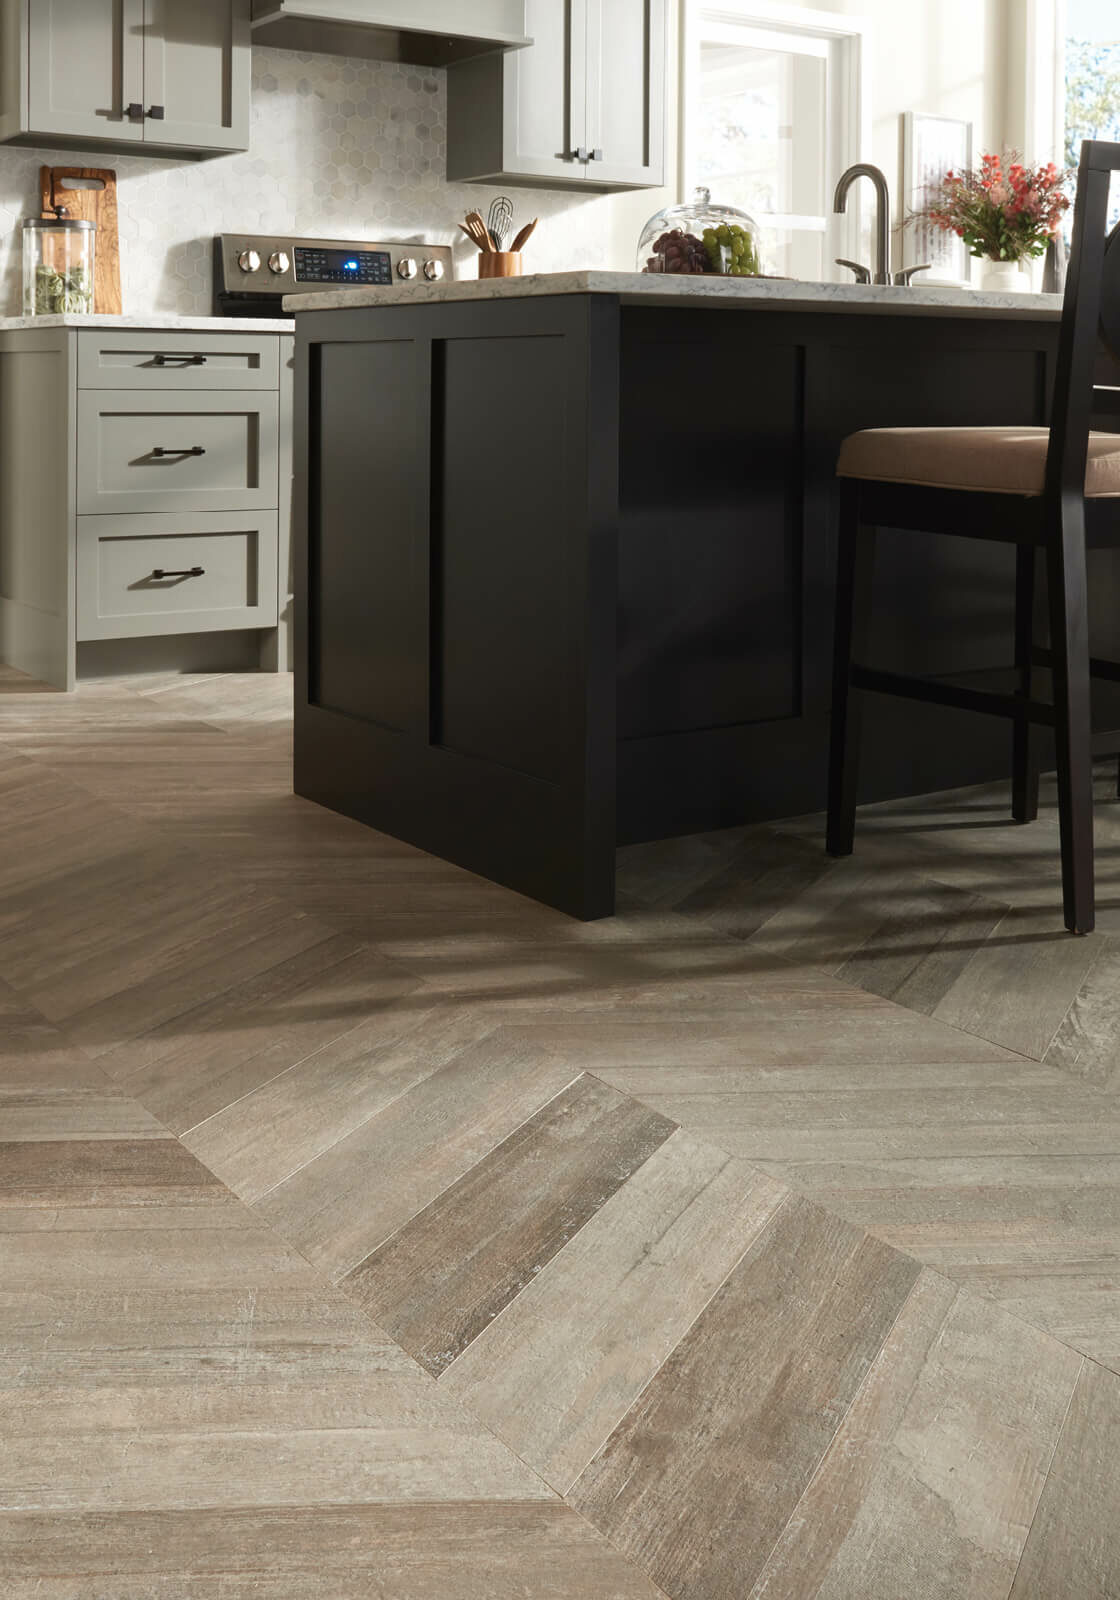 Glee chevron flooring | The Flooring Place